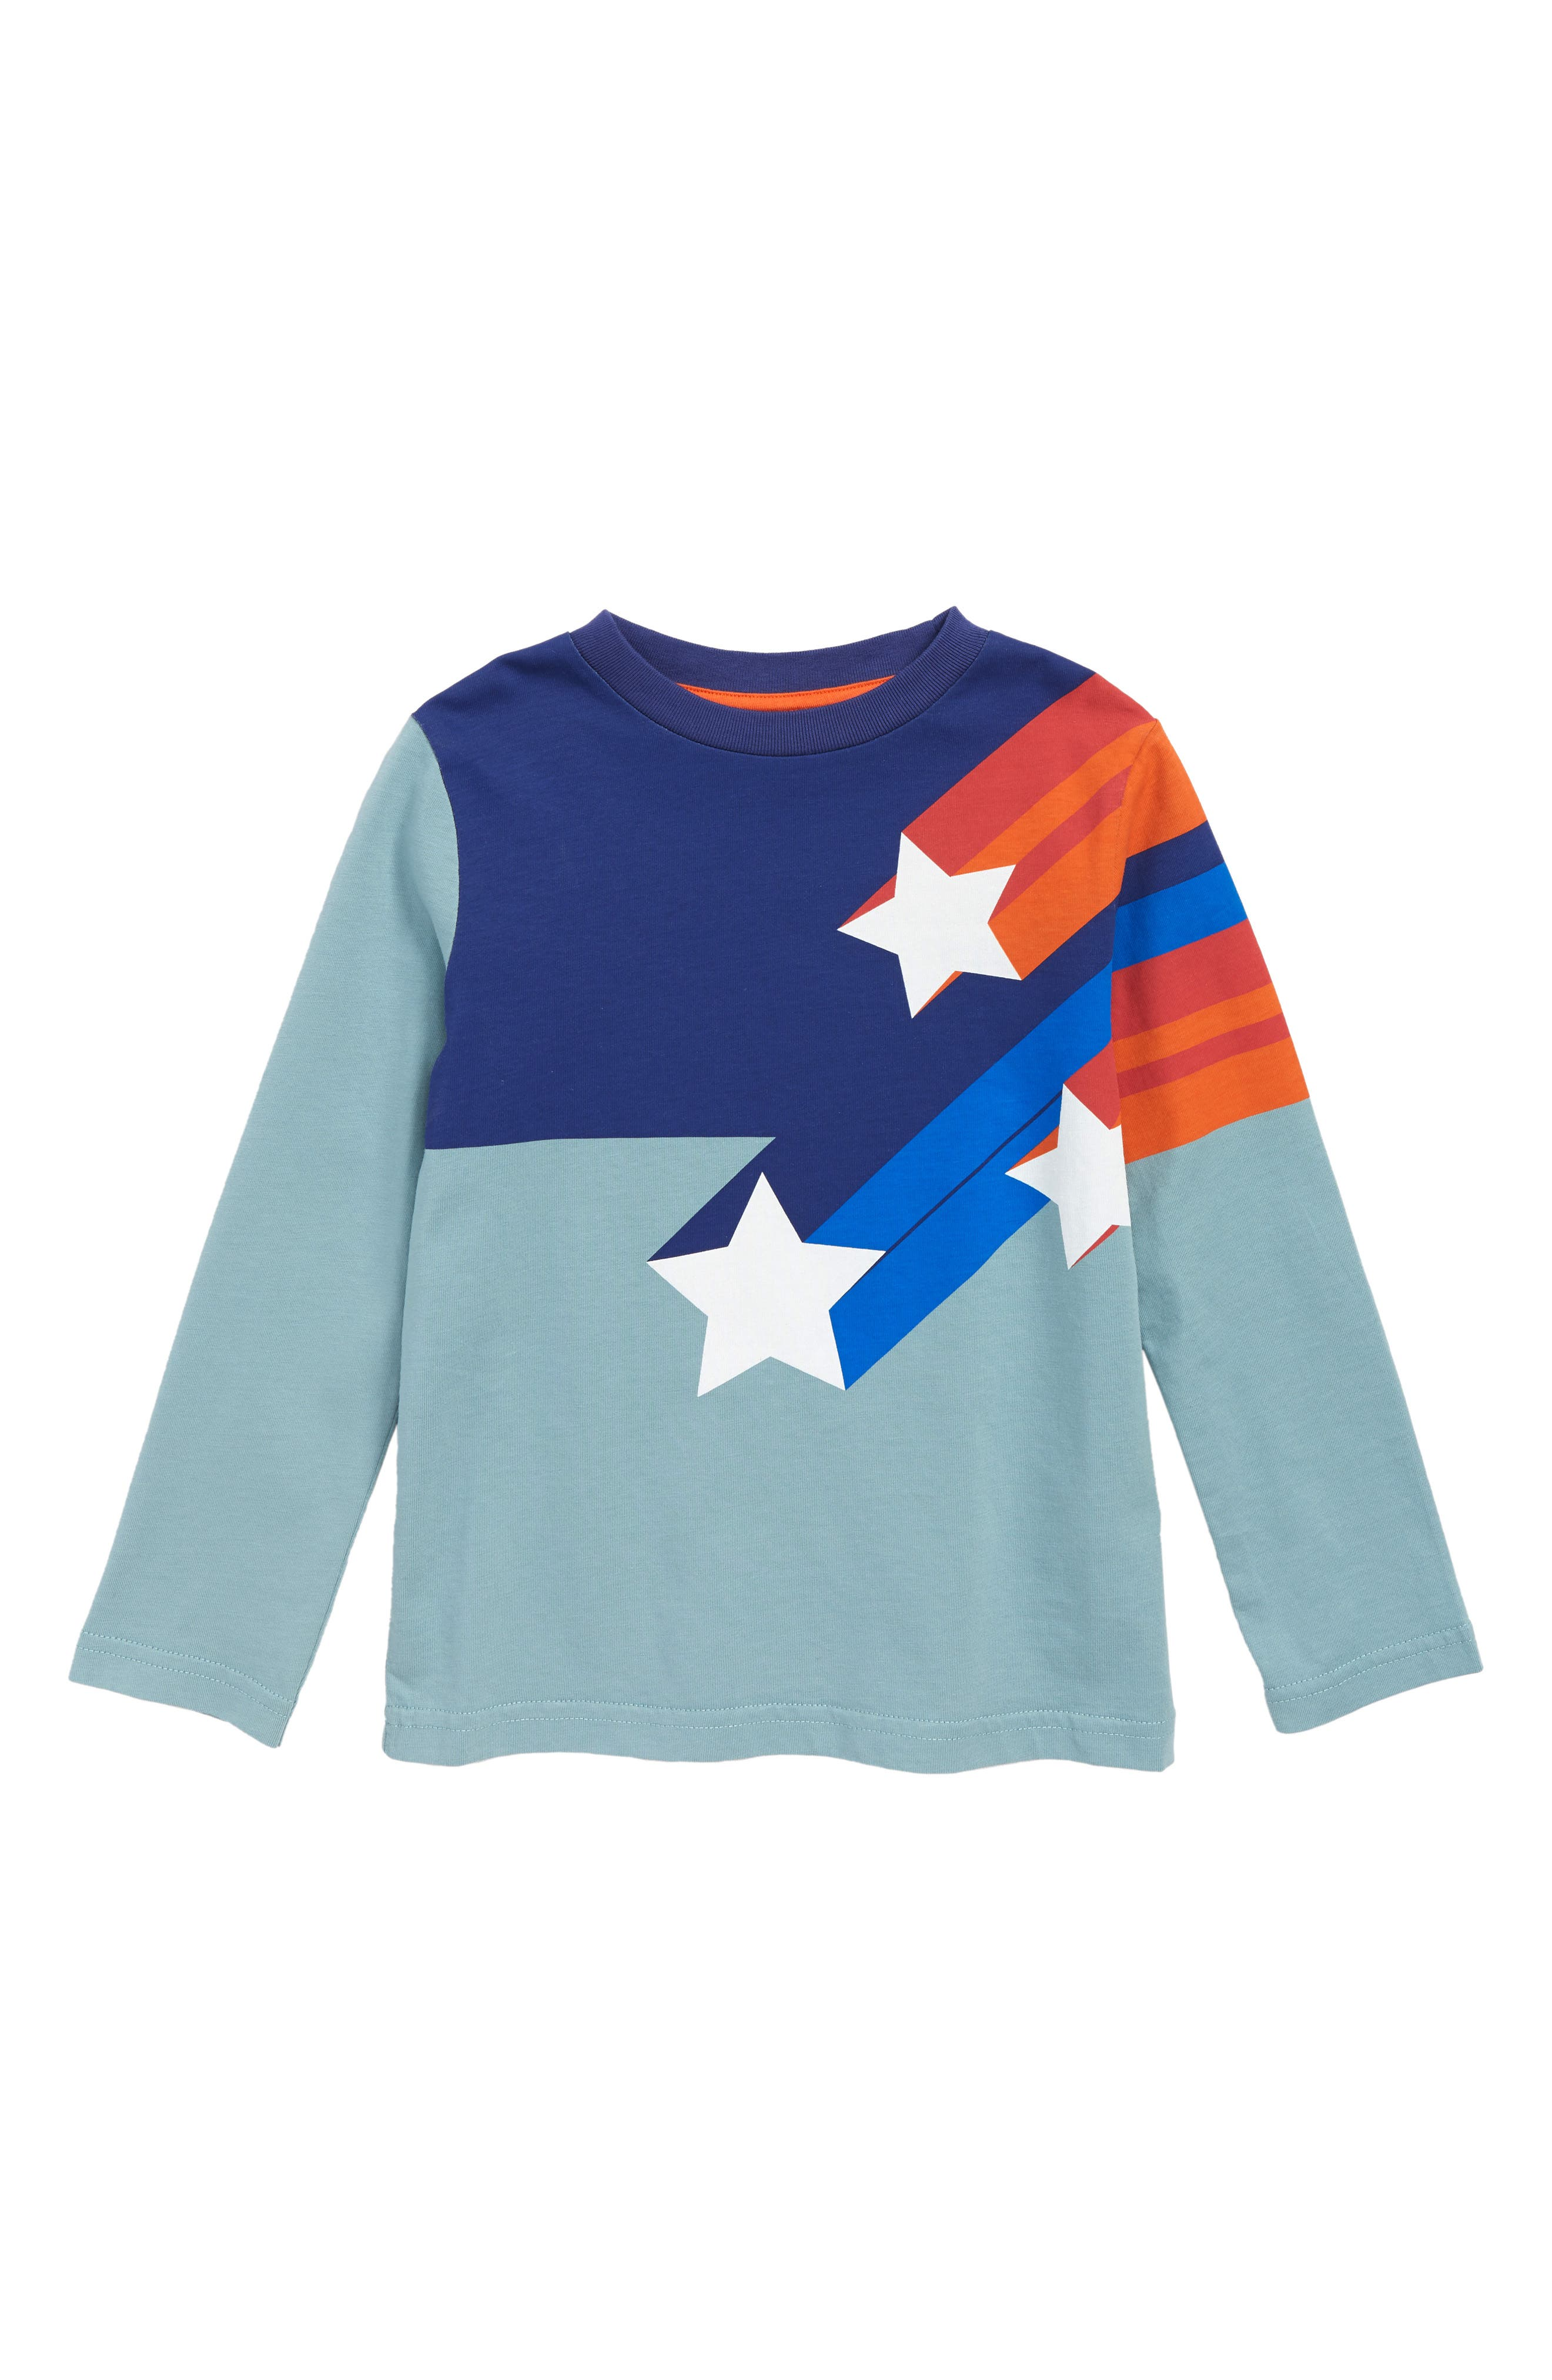 Shooting Stars Superstar T-Shirt,                             Main thumbnail 1, color,                             424